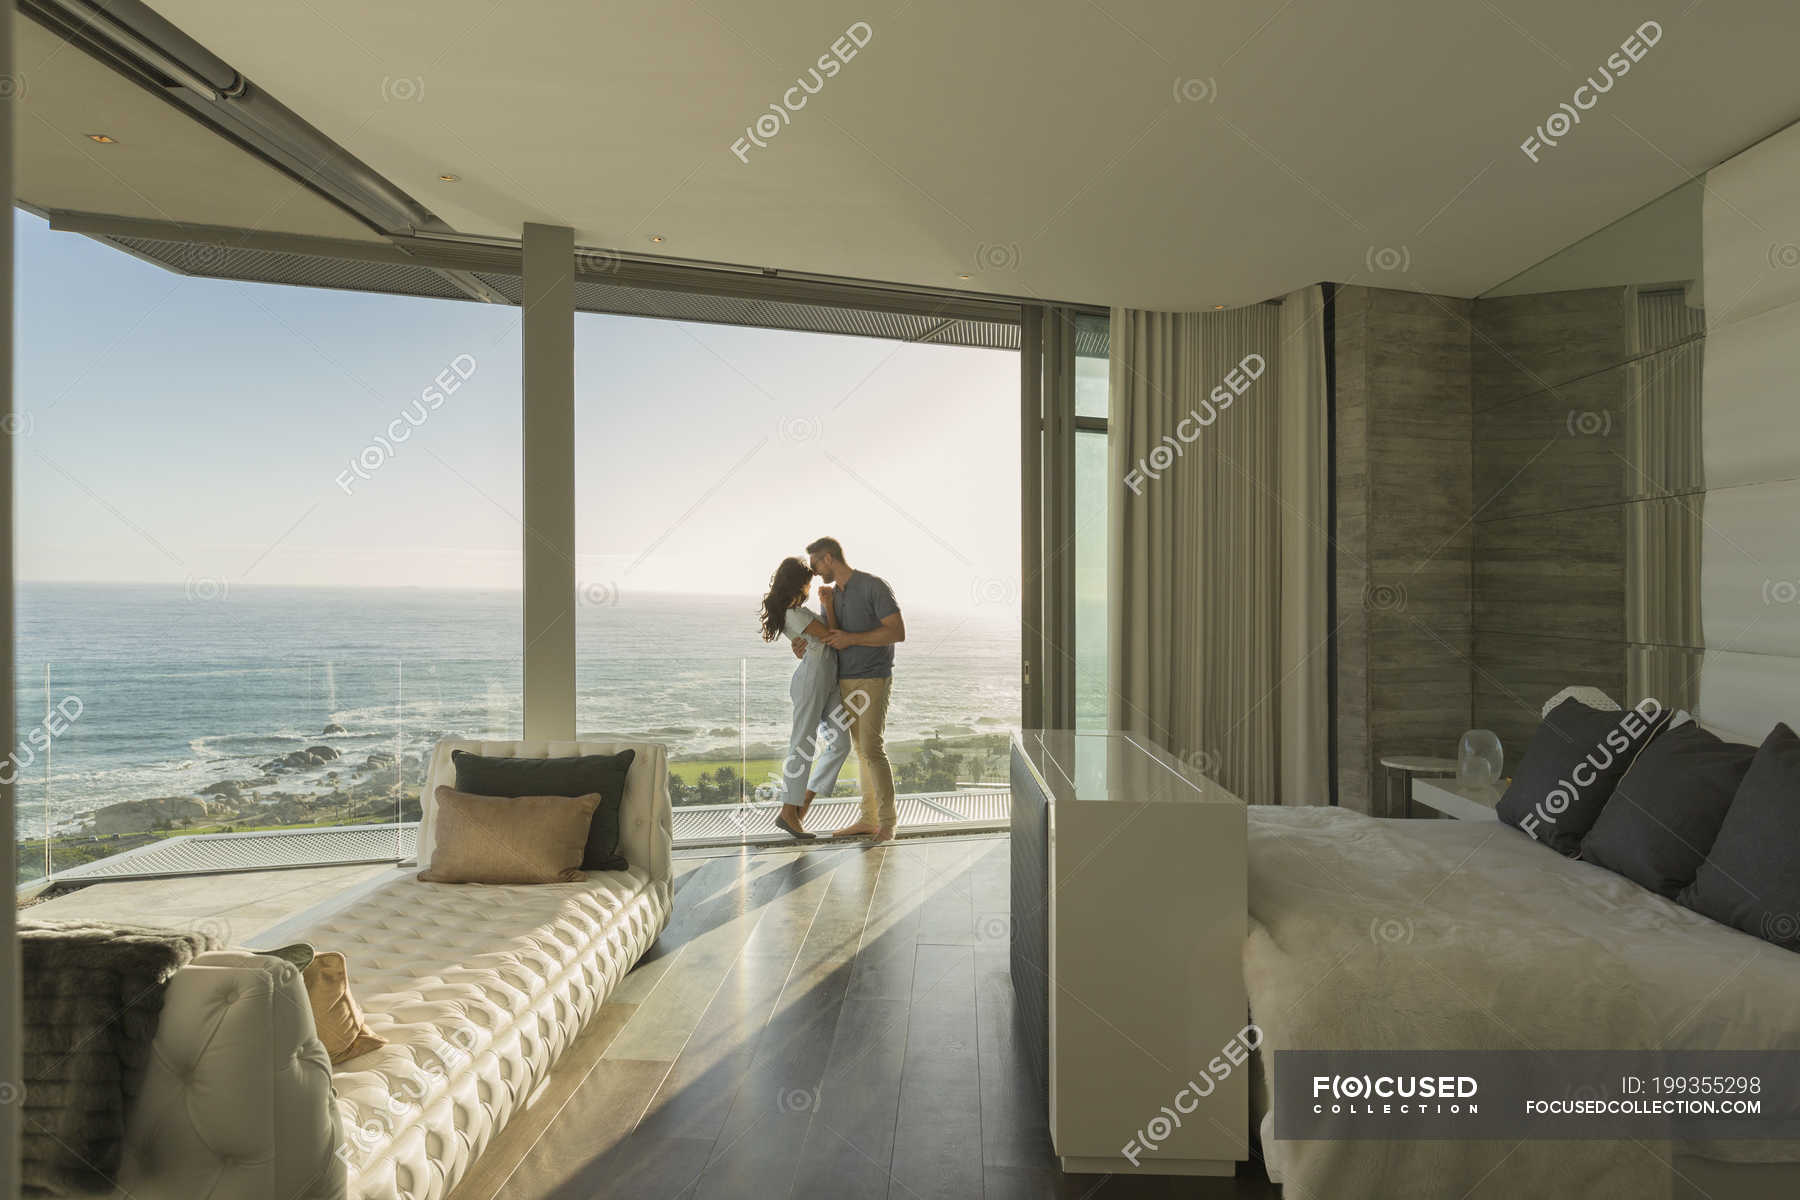 Showcase bedroom interior for couples